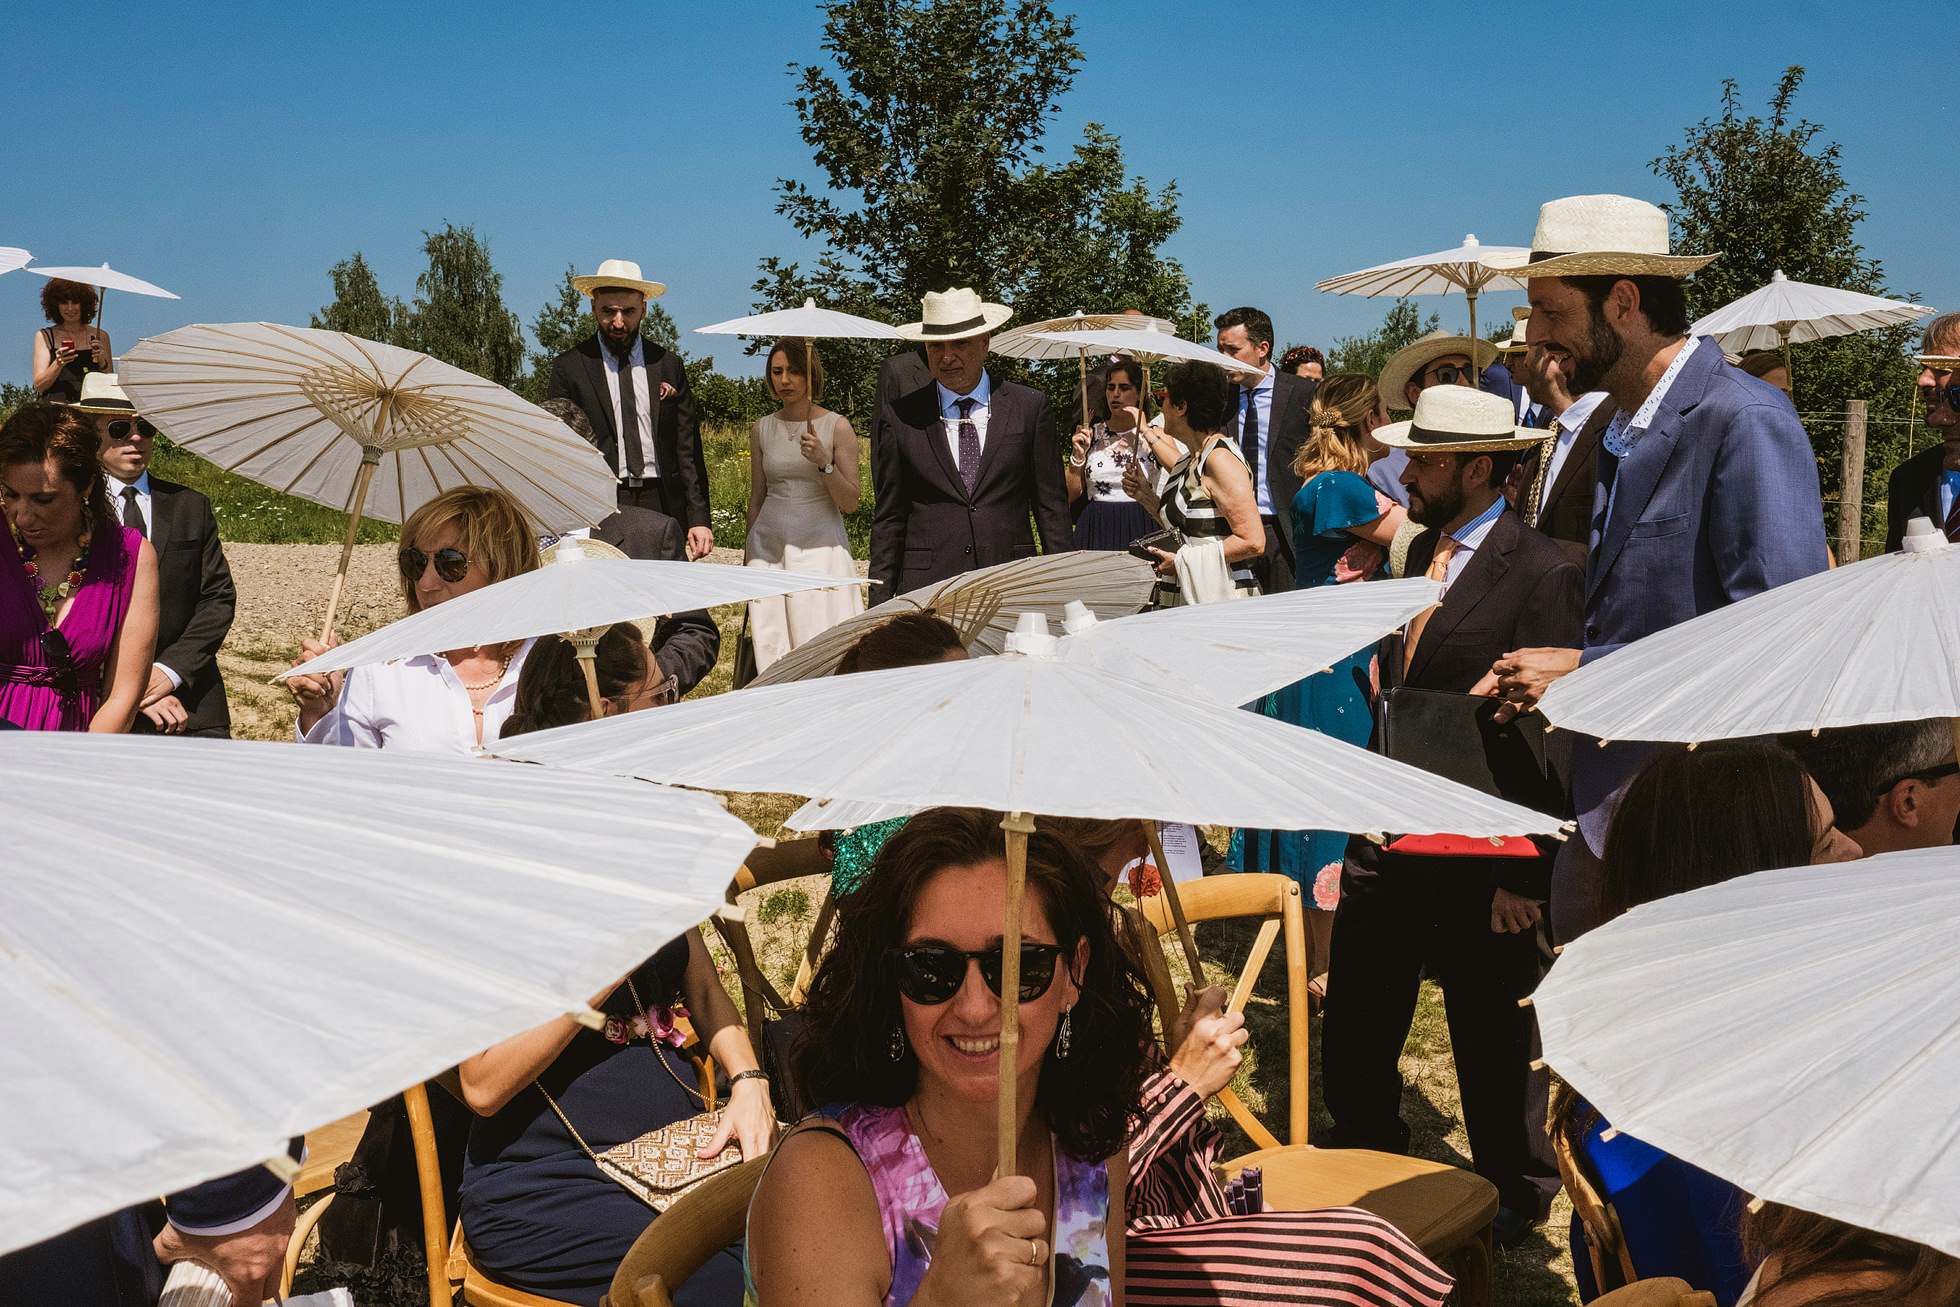 Wedding Guests with Sun Umbrellas